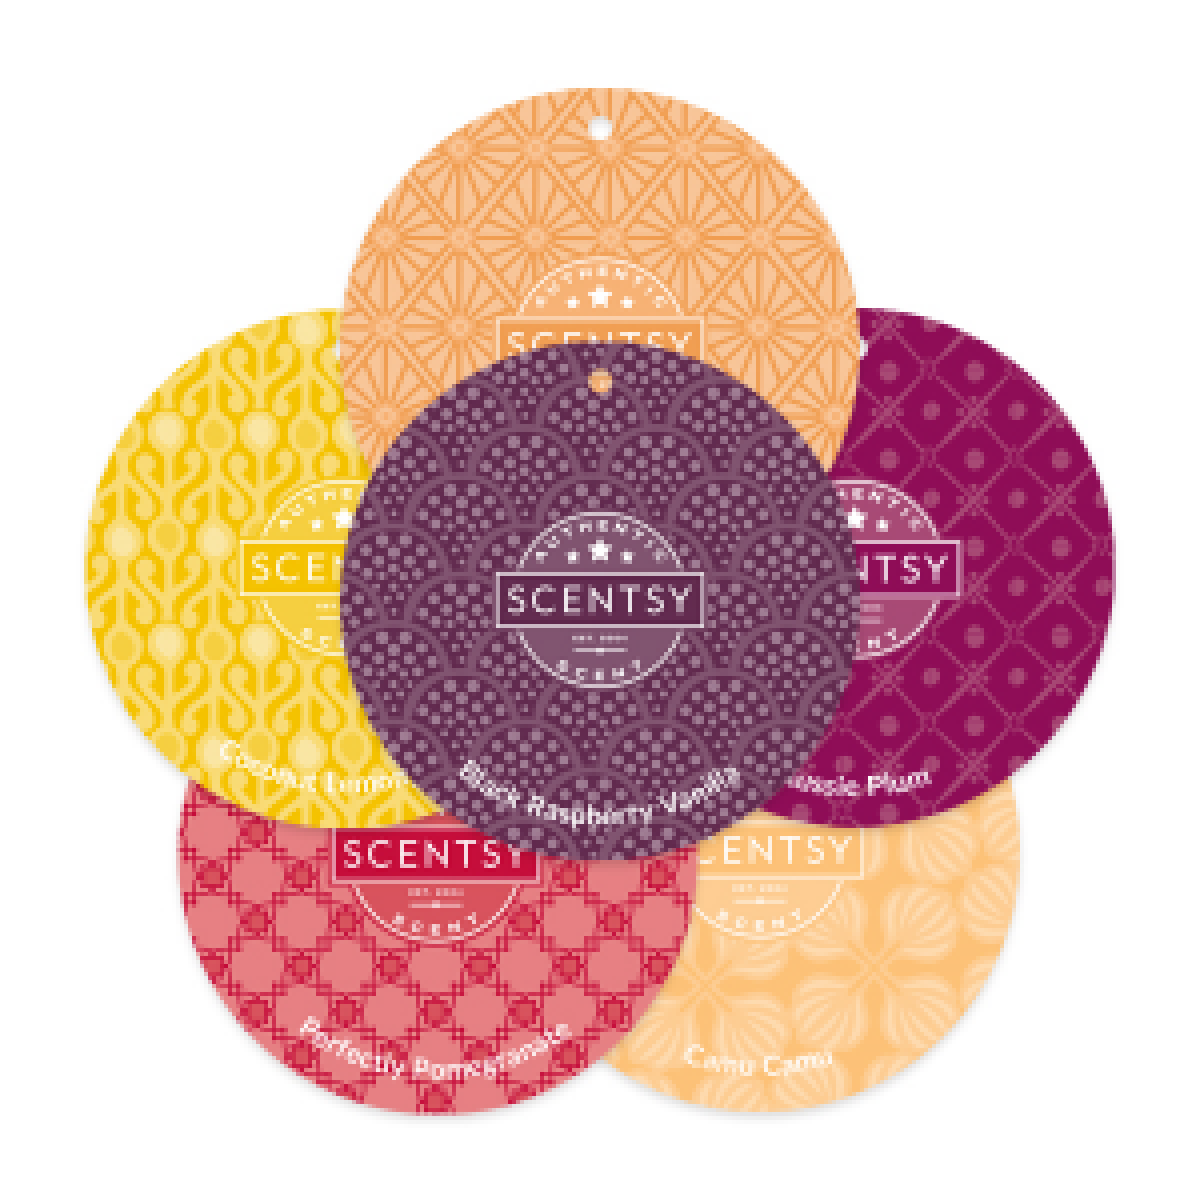 Scentsy Scents Cheaper Than Retail Price Buy Clothing Accessories And Lifestyle Products For Women Men